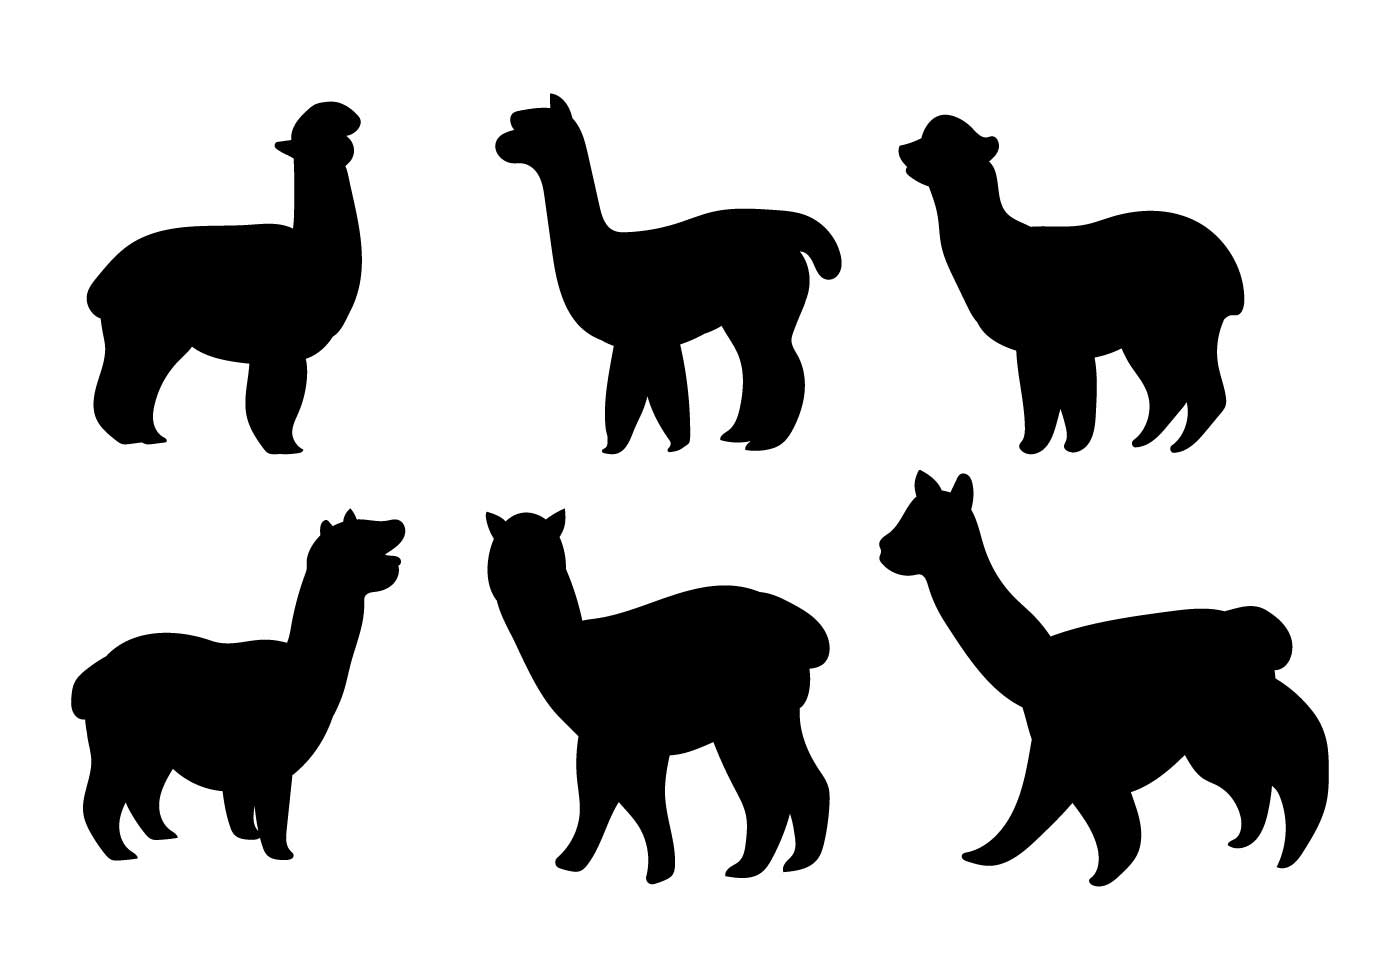 alpaca vector download free vector art  stock graphics clip art banners free images clip art banners and scrolls